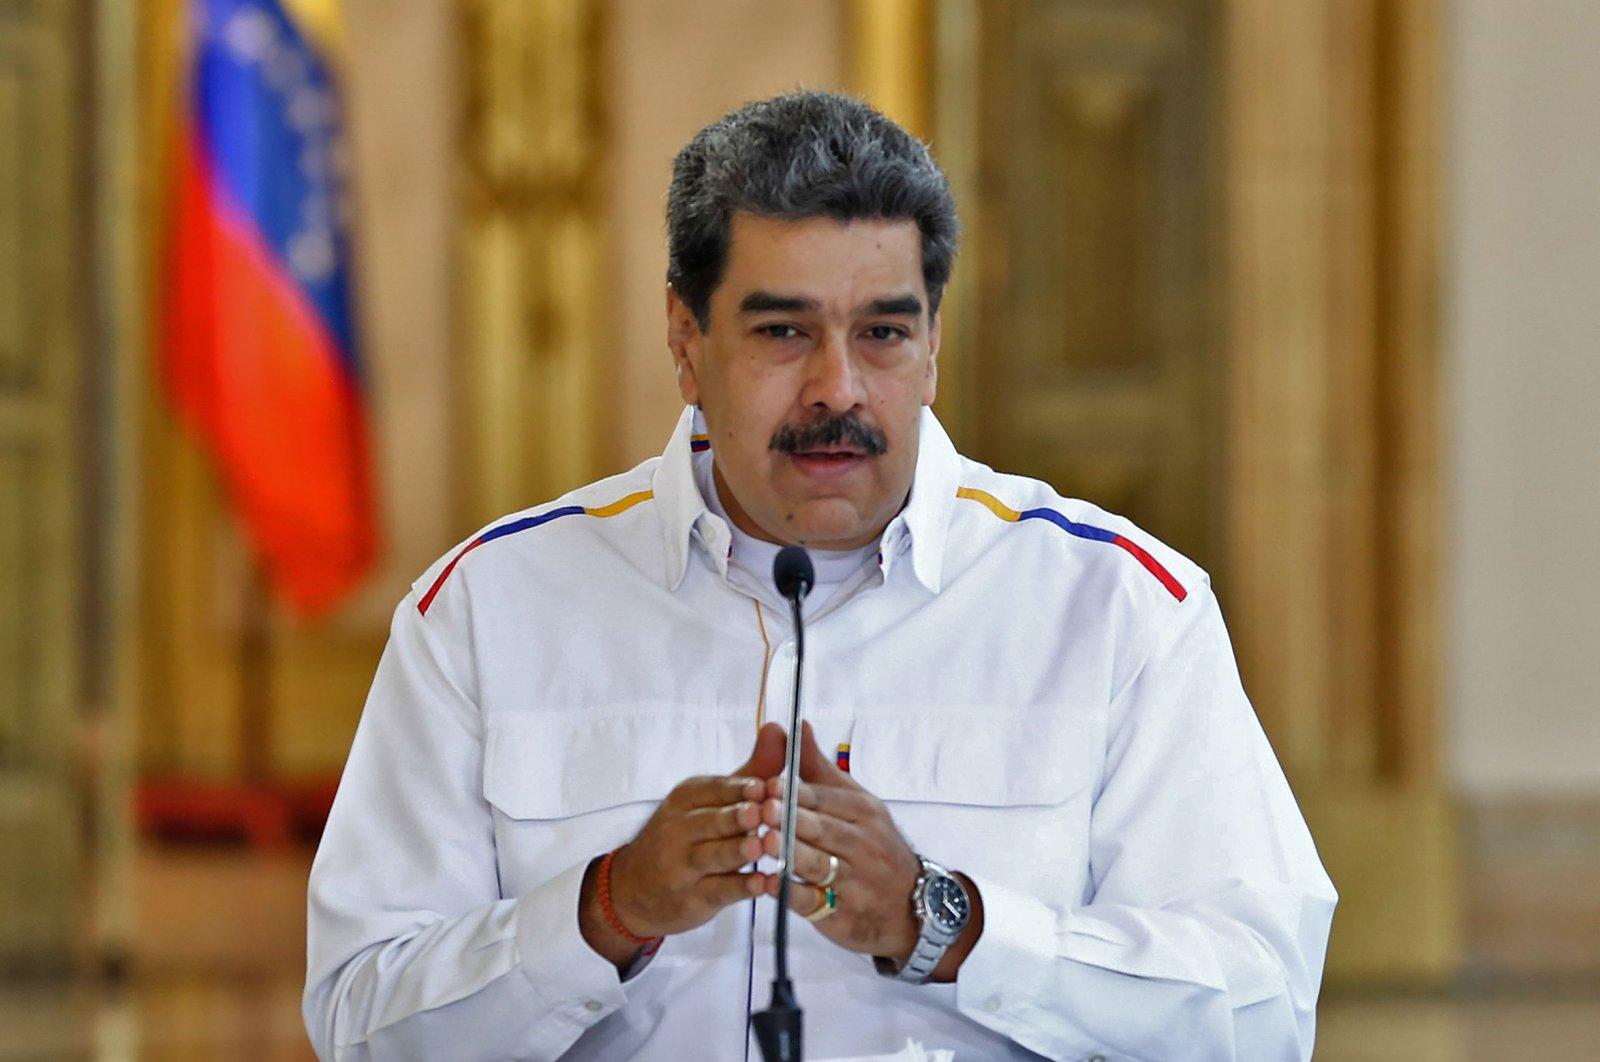 Venezuela's President Nicolas Maduro speaks during a televised message announcing new arrests related to an alleged failed bid to topple him, at Miraflores Presidential Palace, Caracas, May 9, 2020. (AFP Photo)